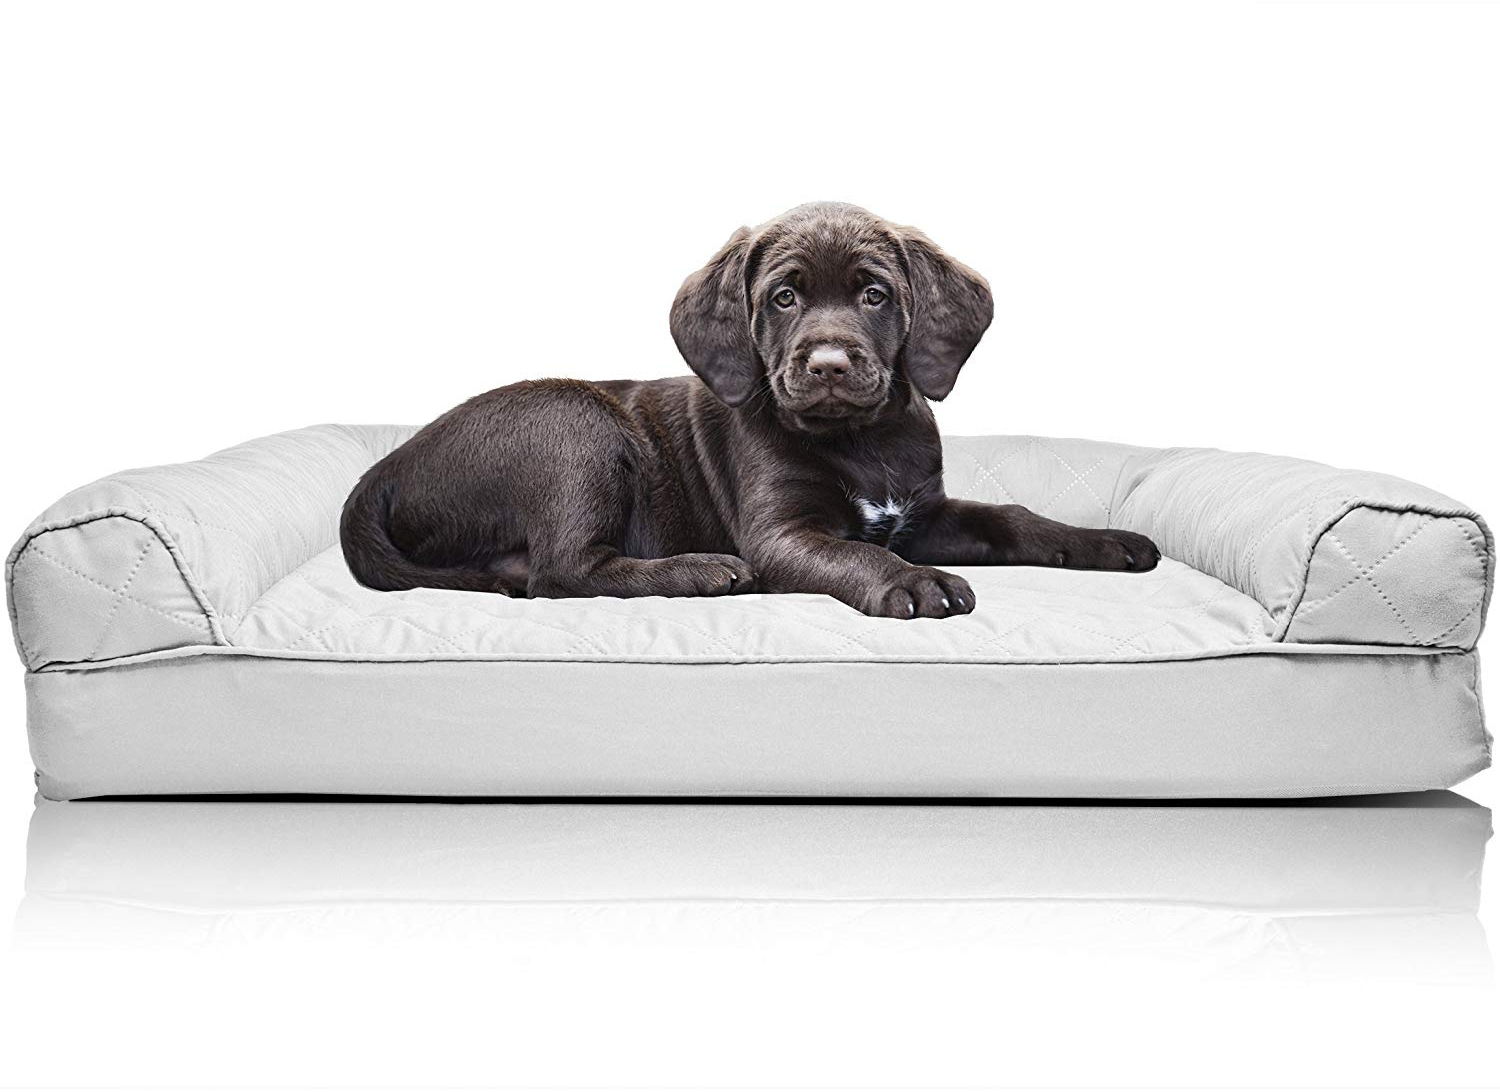 Sensational Details About Furhaven Pet Dog Bed Orthopedic Quilted Sofa Style Couch Pet Bed For Dogs And Gmtry Best Dining Table And Chair Ideas Images Gmtryco